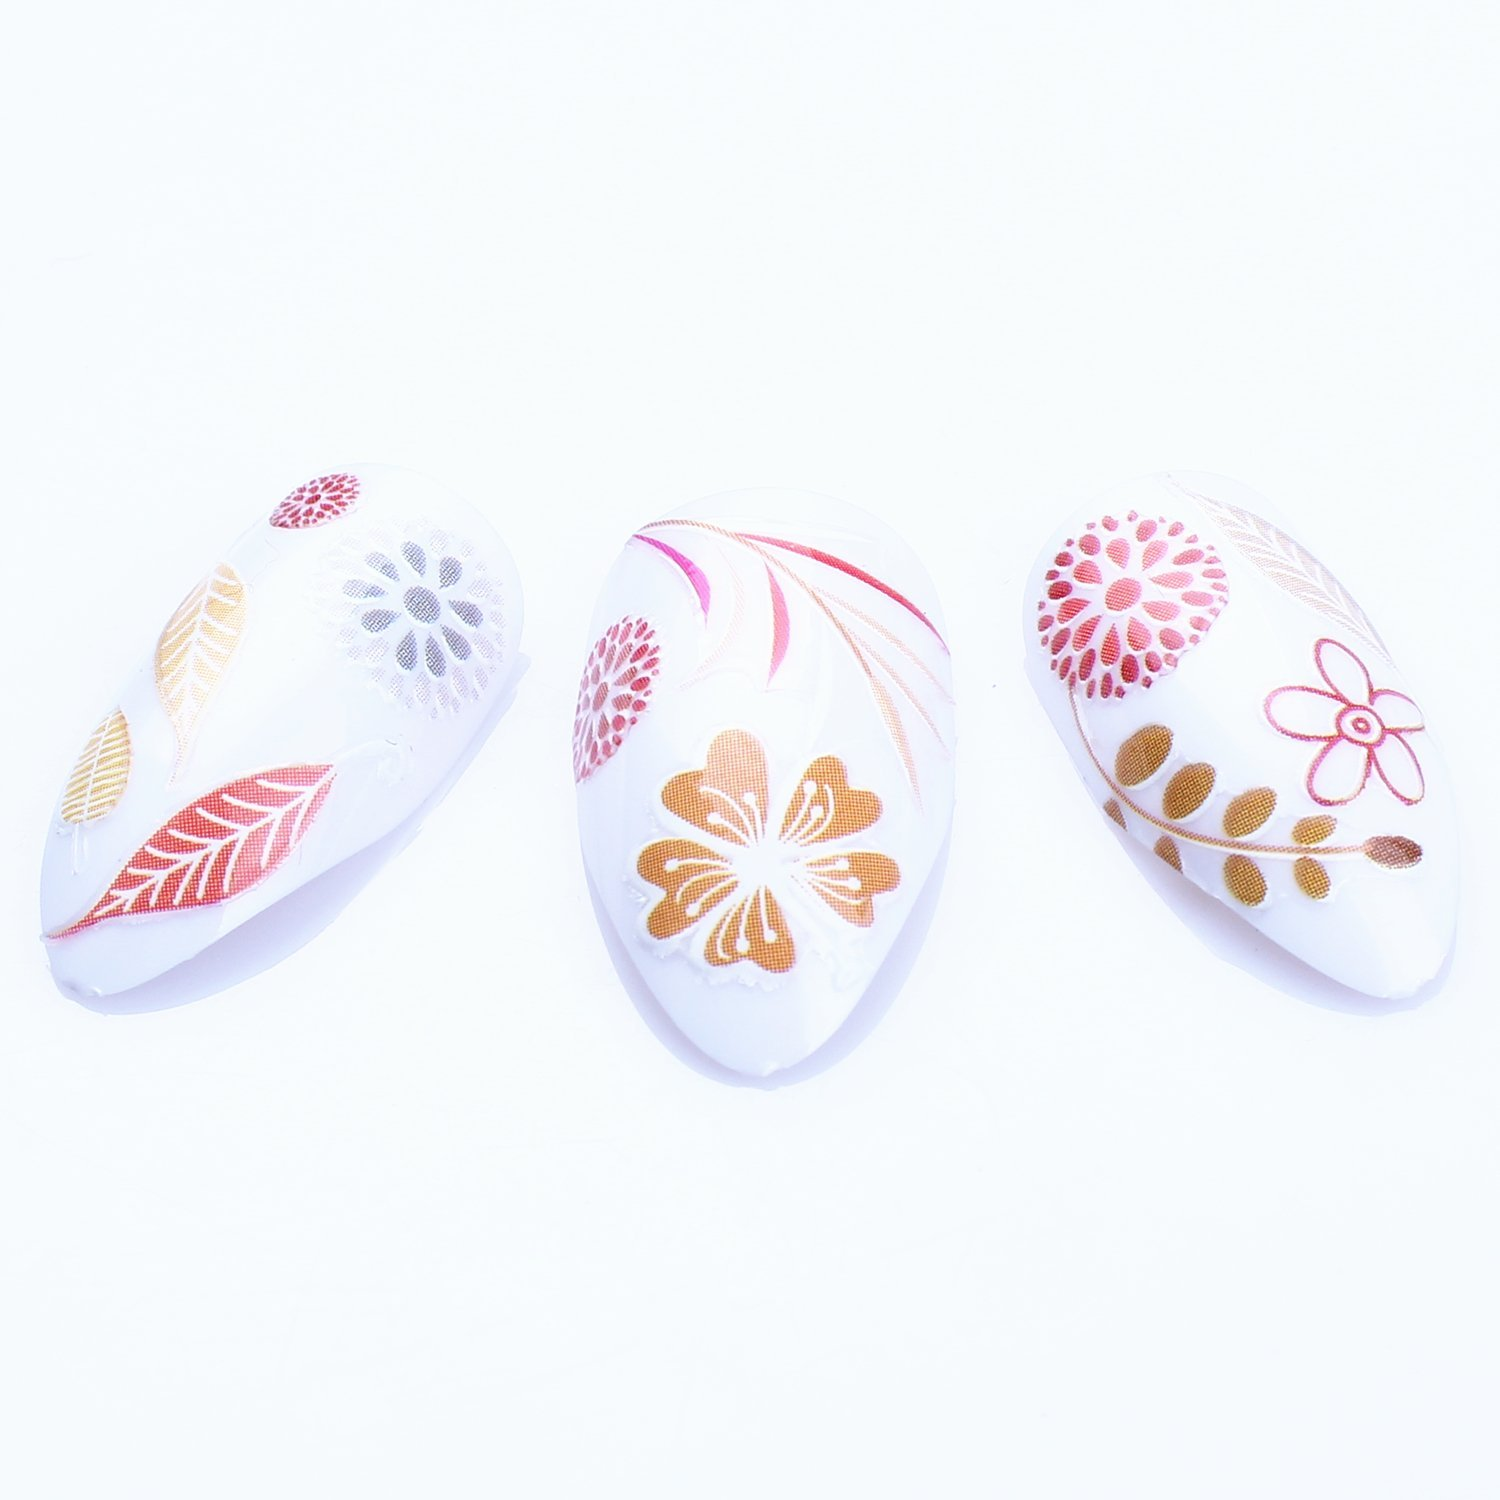 ECBASKET 3D Nail Art Tips Sticker False Nail Design Colorful Flowers Leaves Nail Decal 1 Piece 3 For Ladies